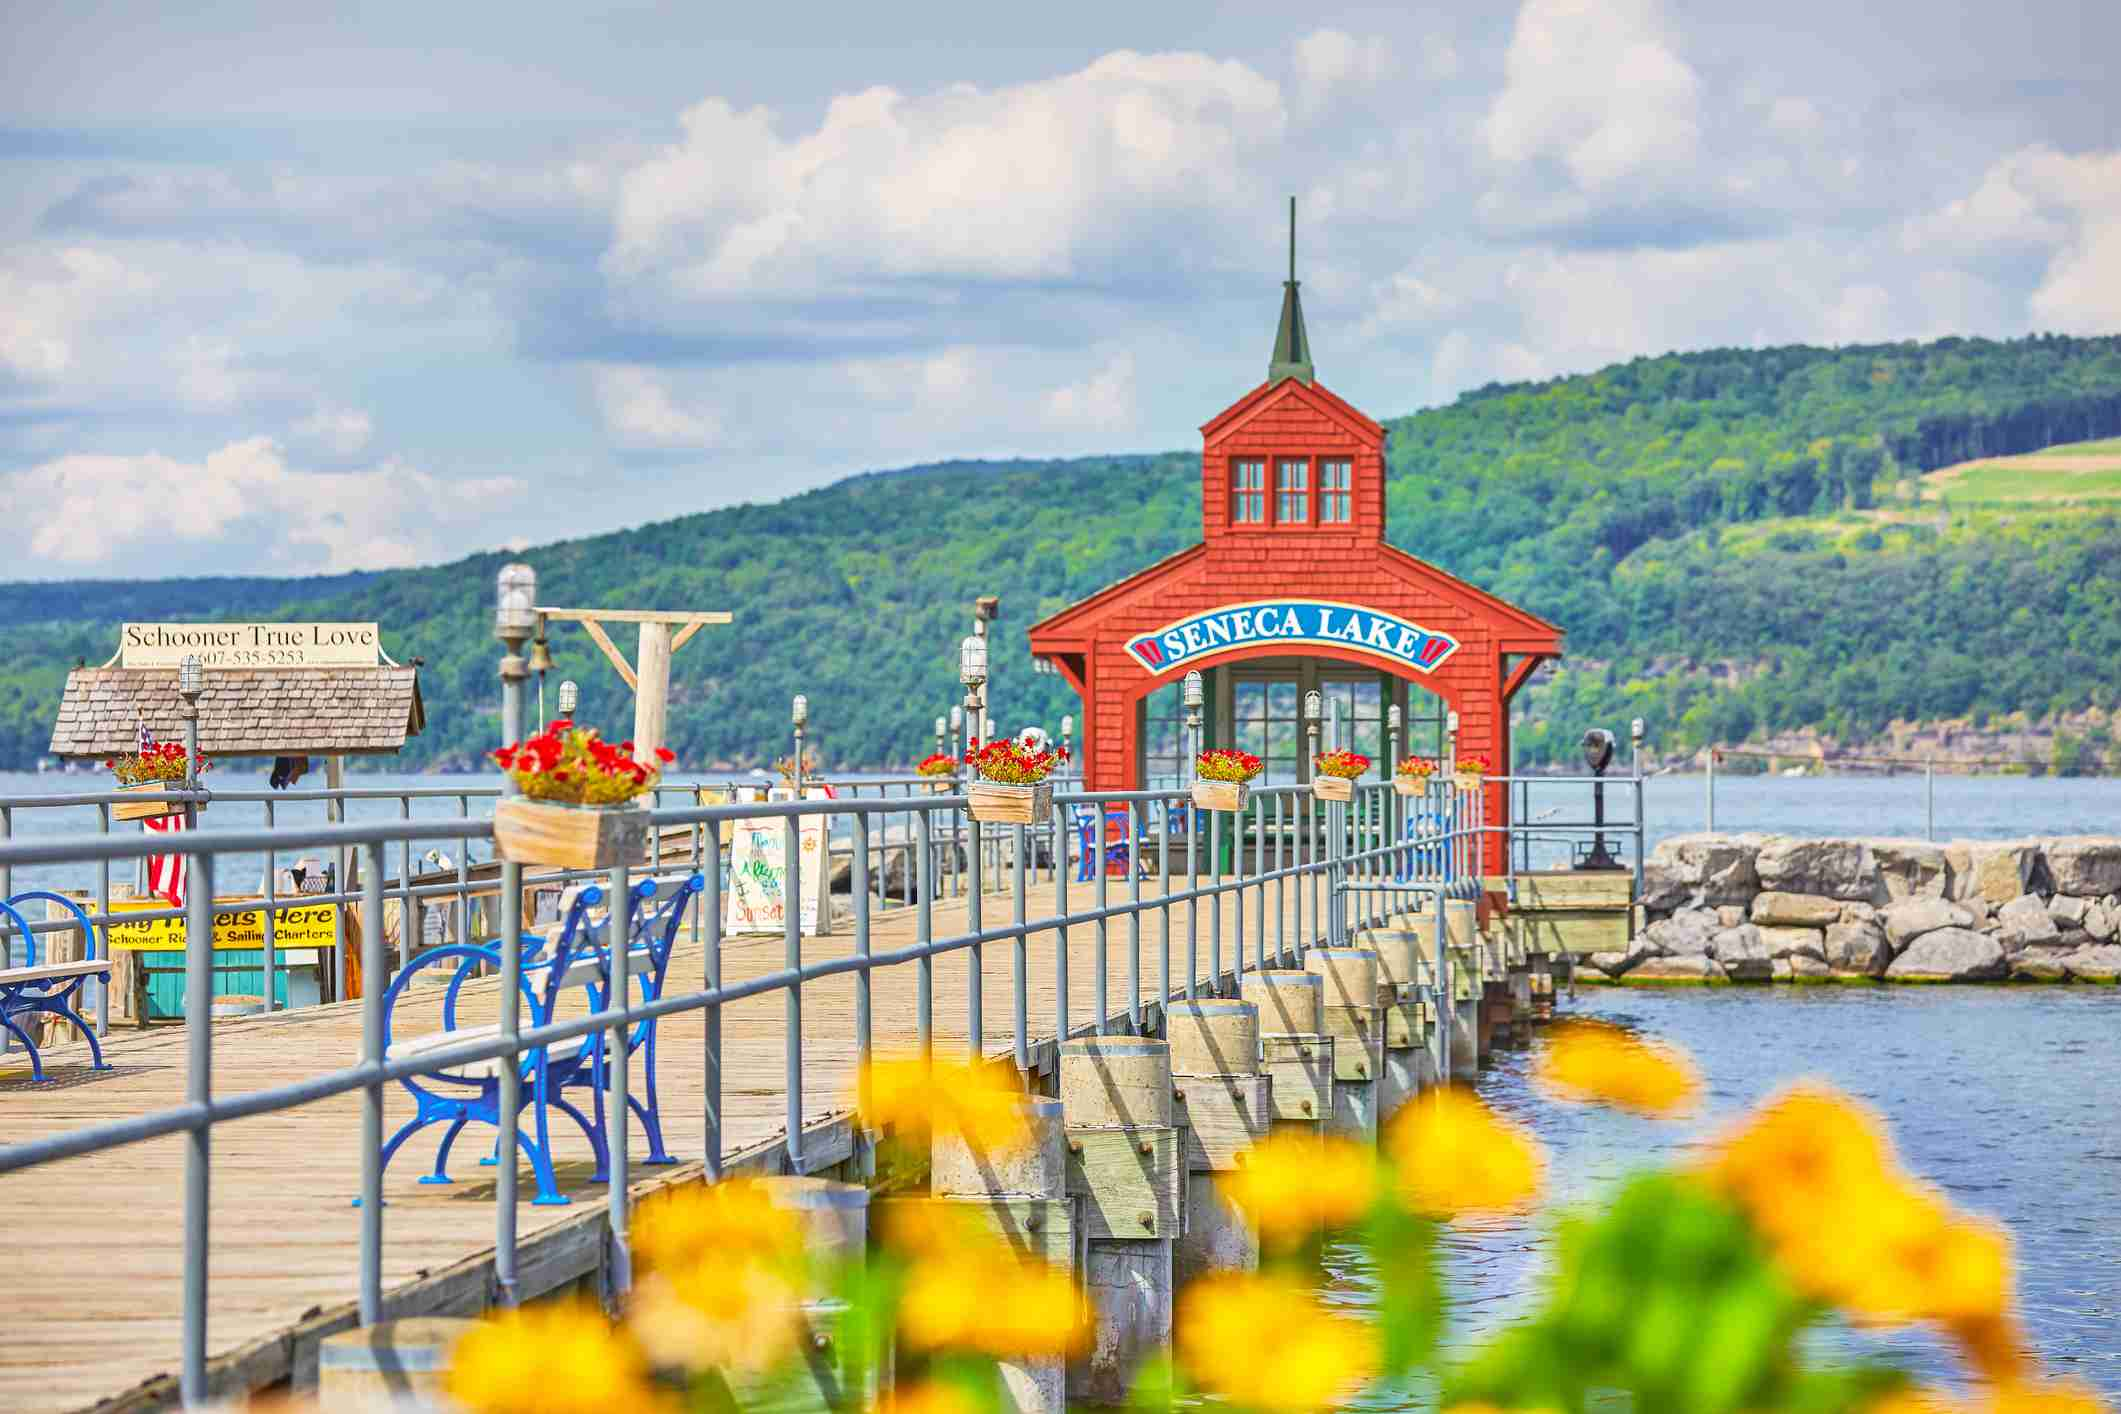 Seneca Lake Pier